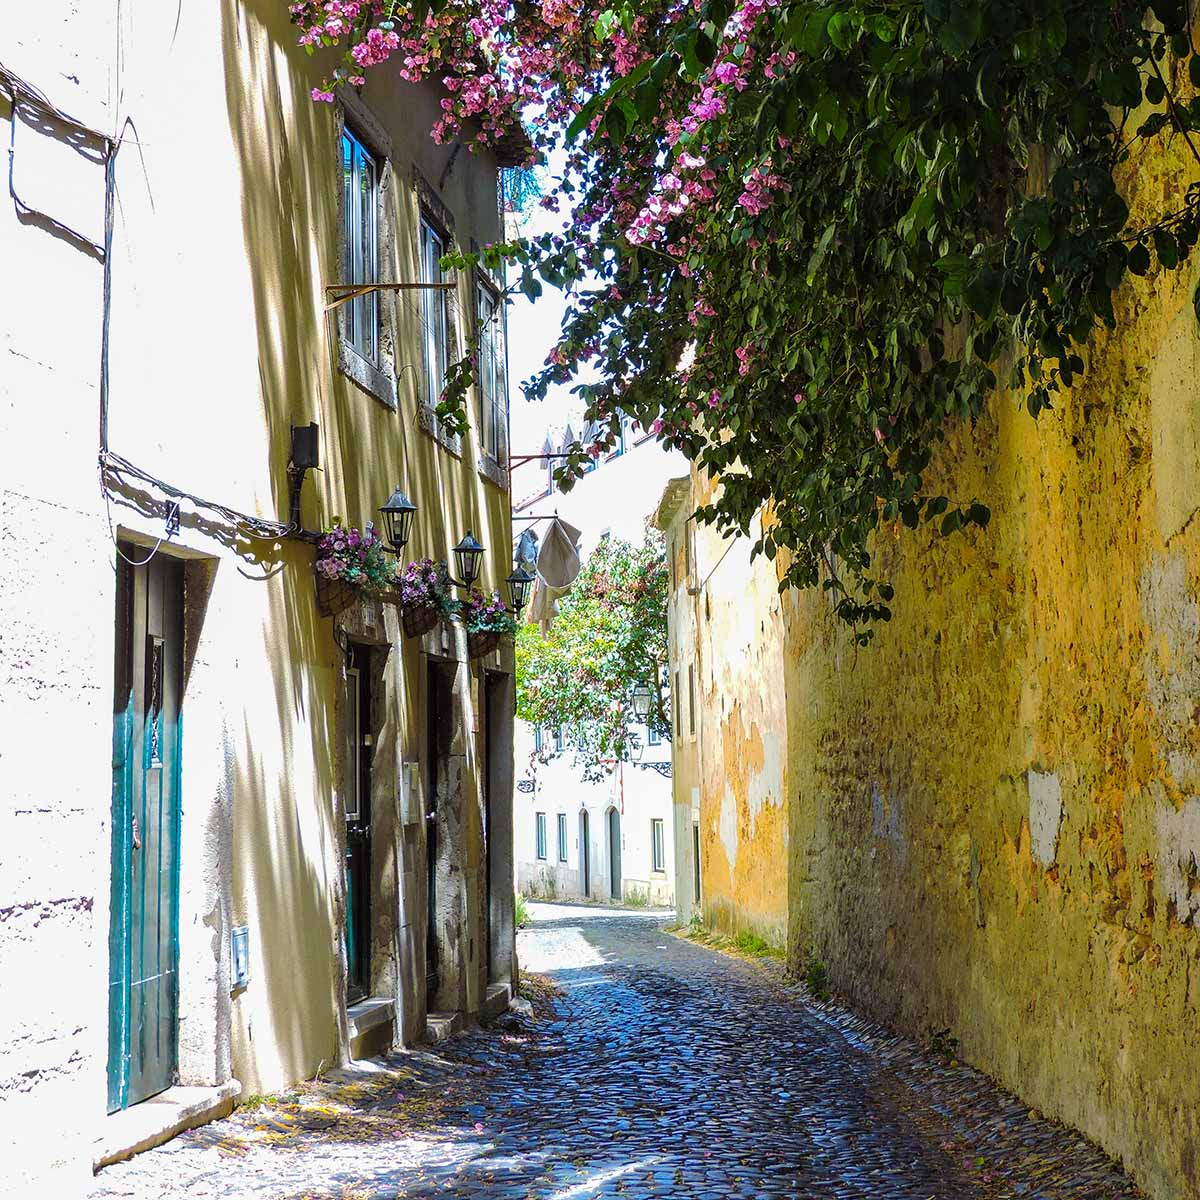 A picturesque side street in Alfama